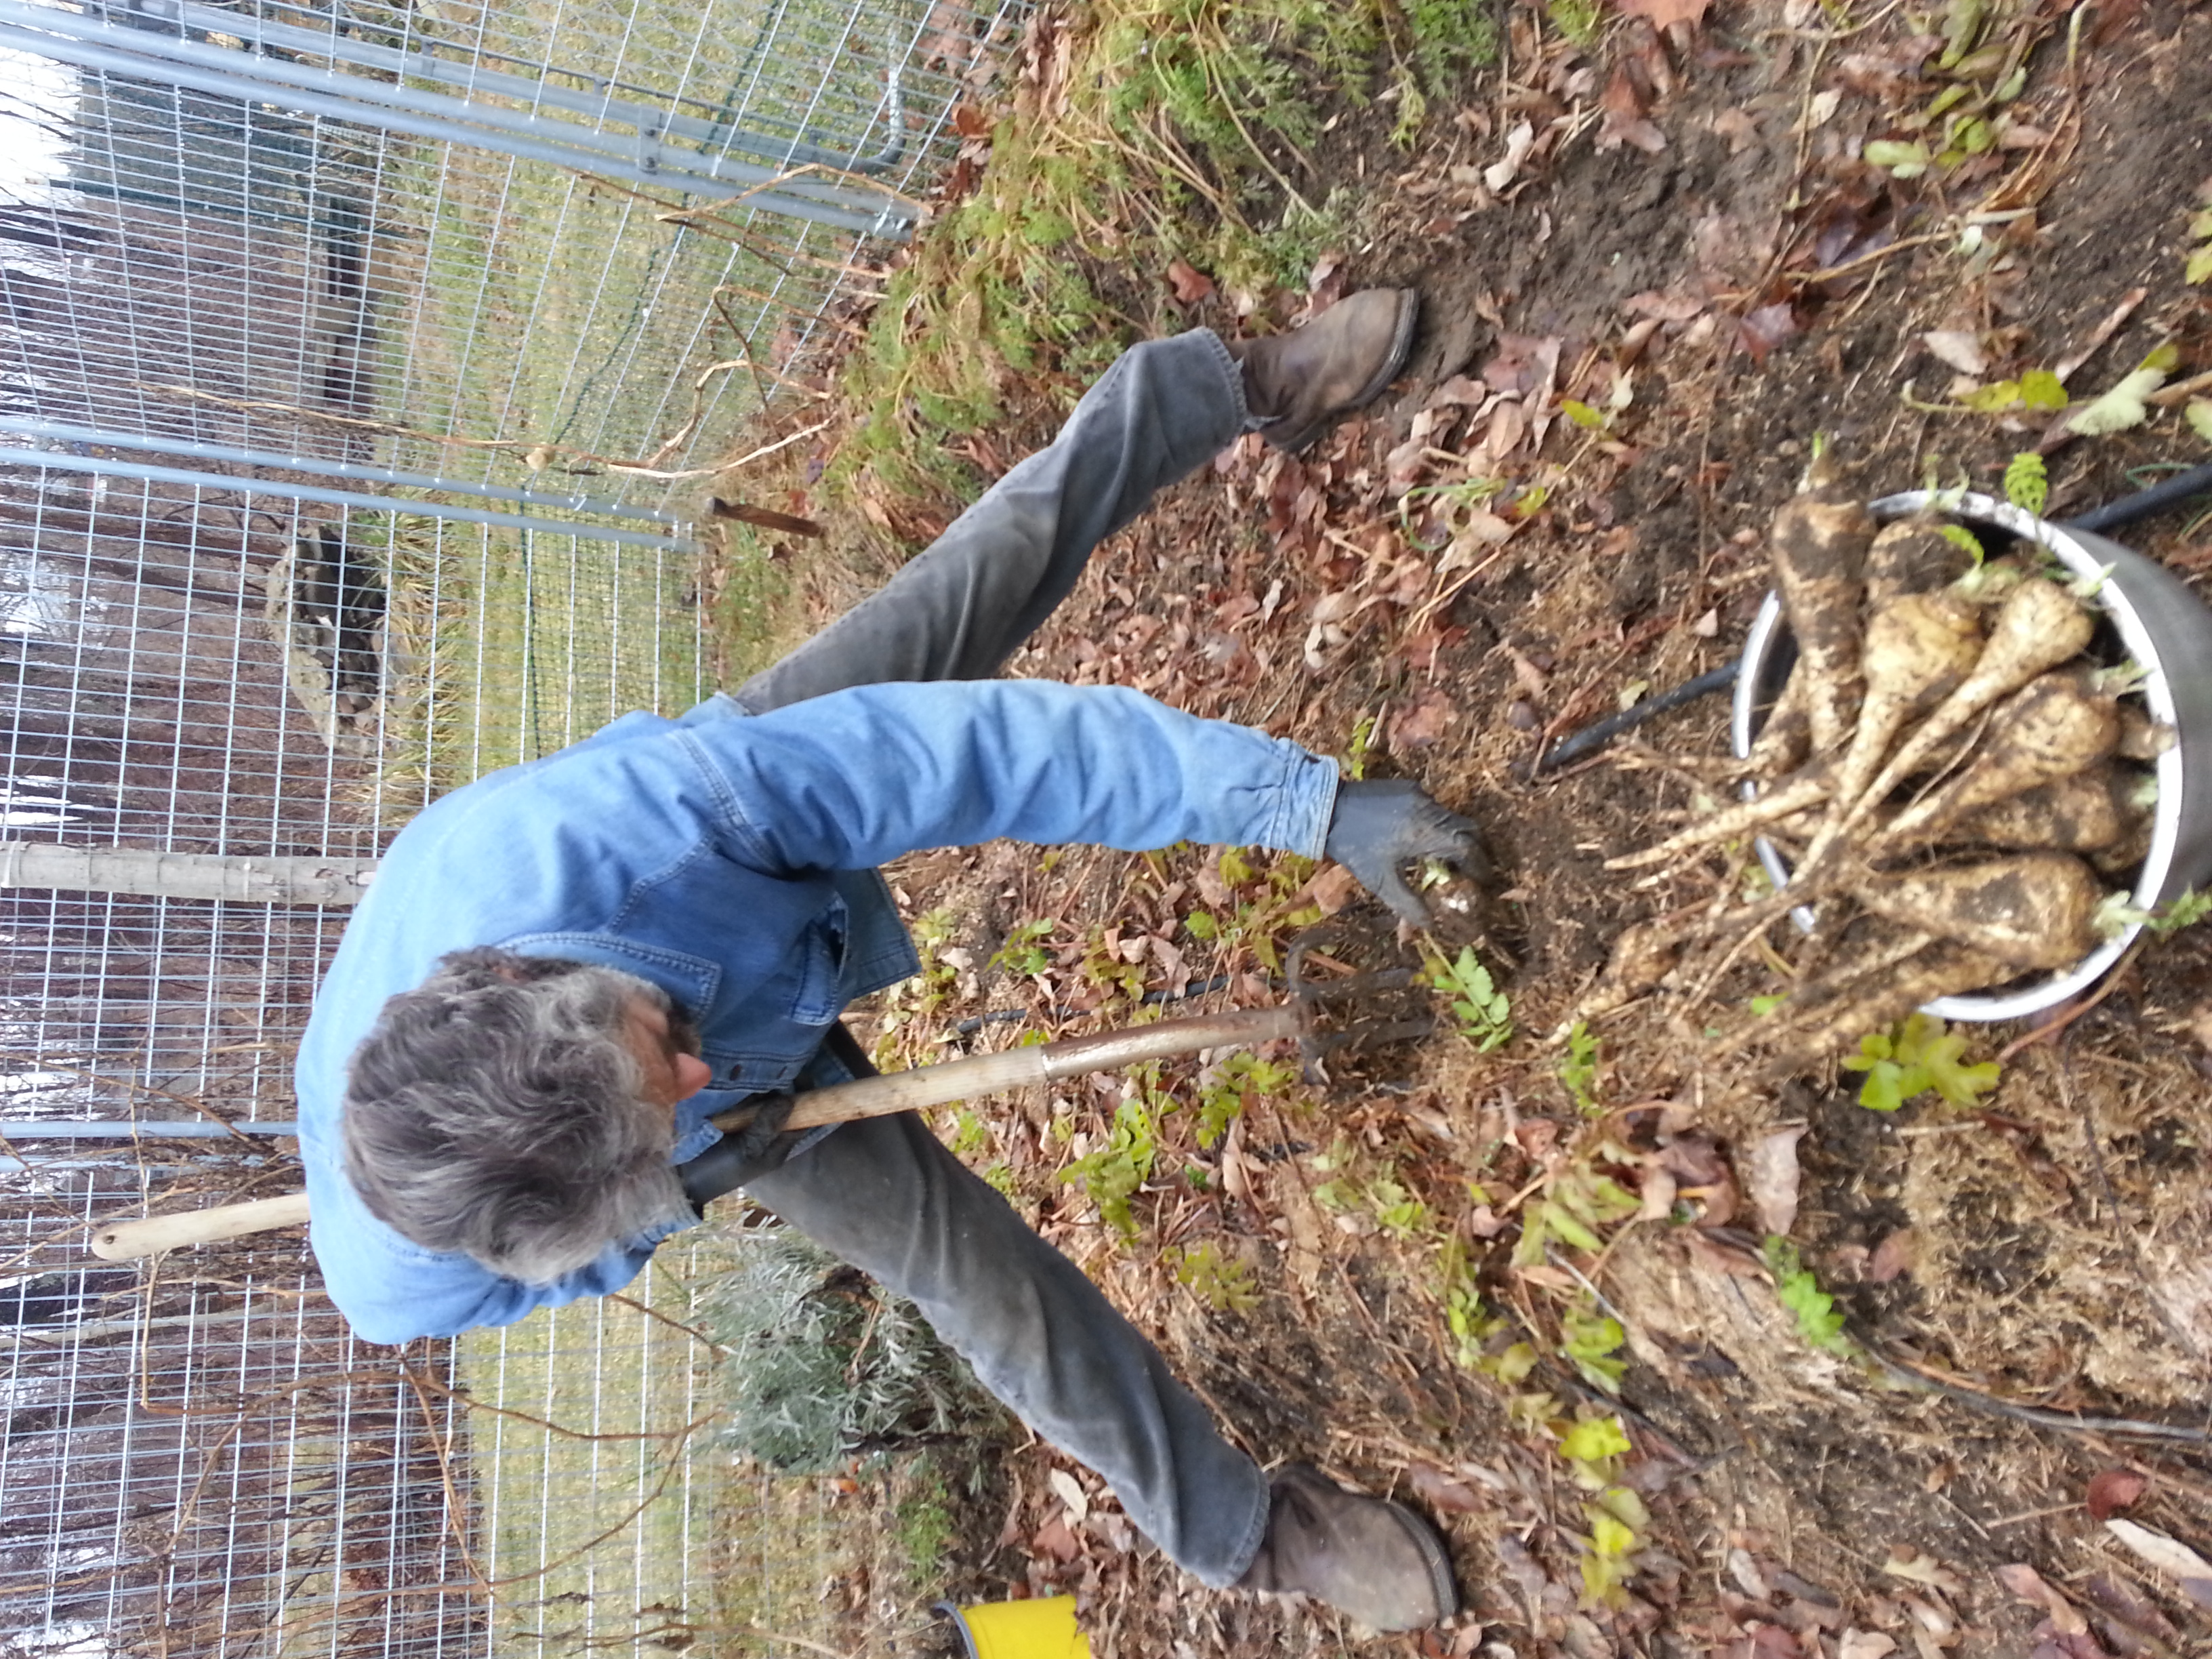 digging up parsnips